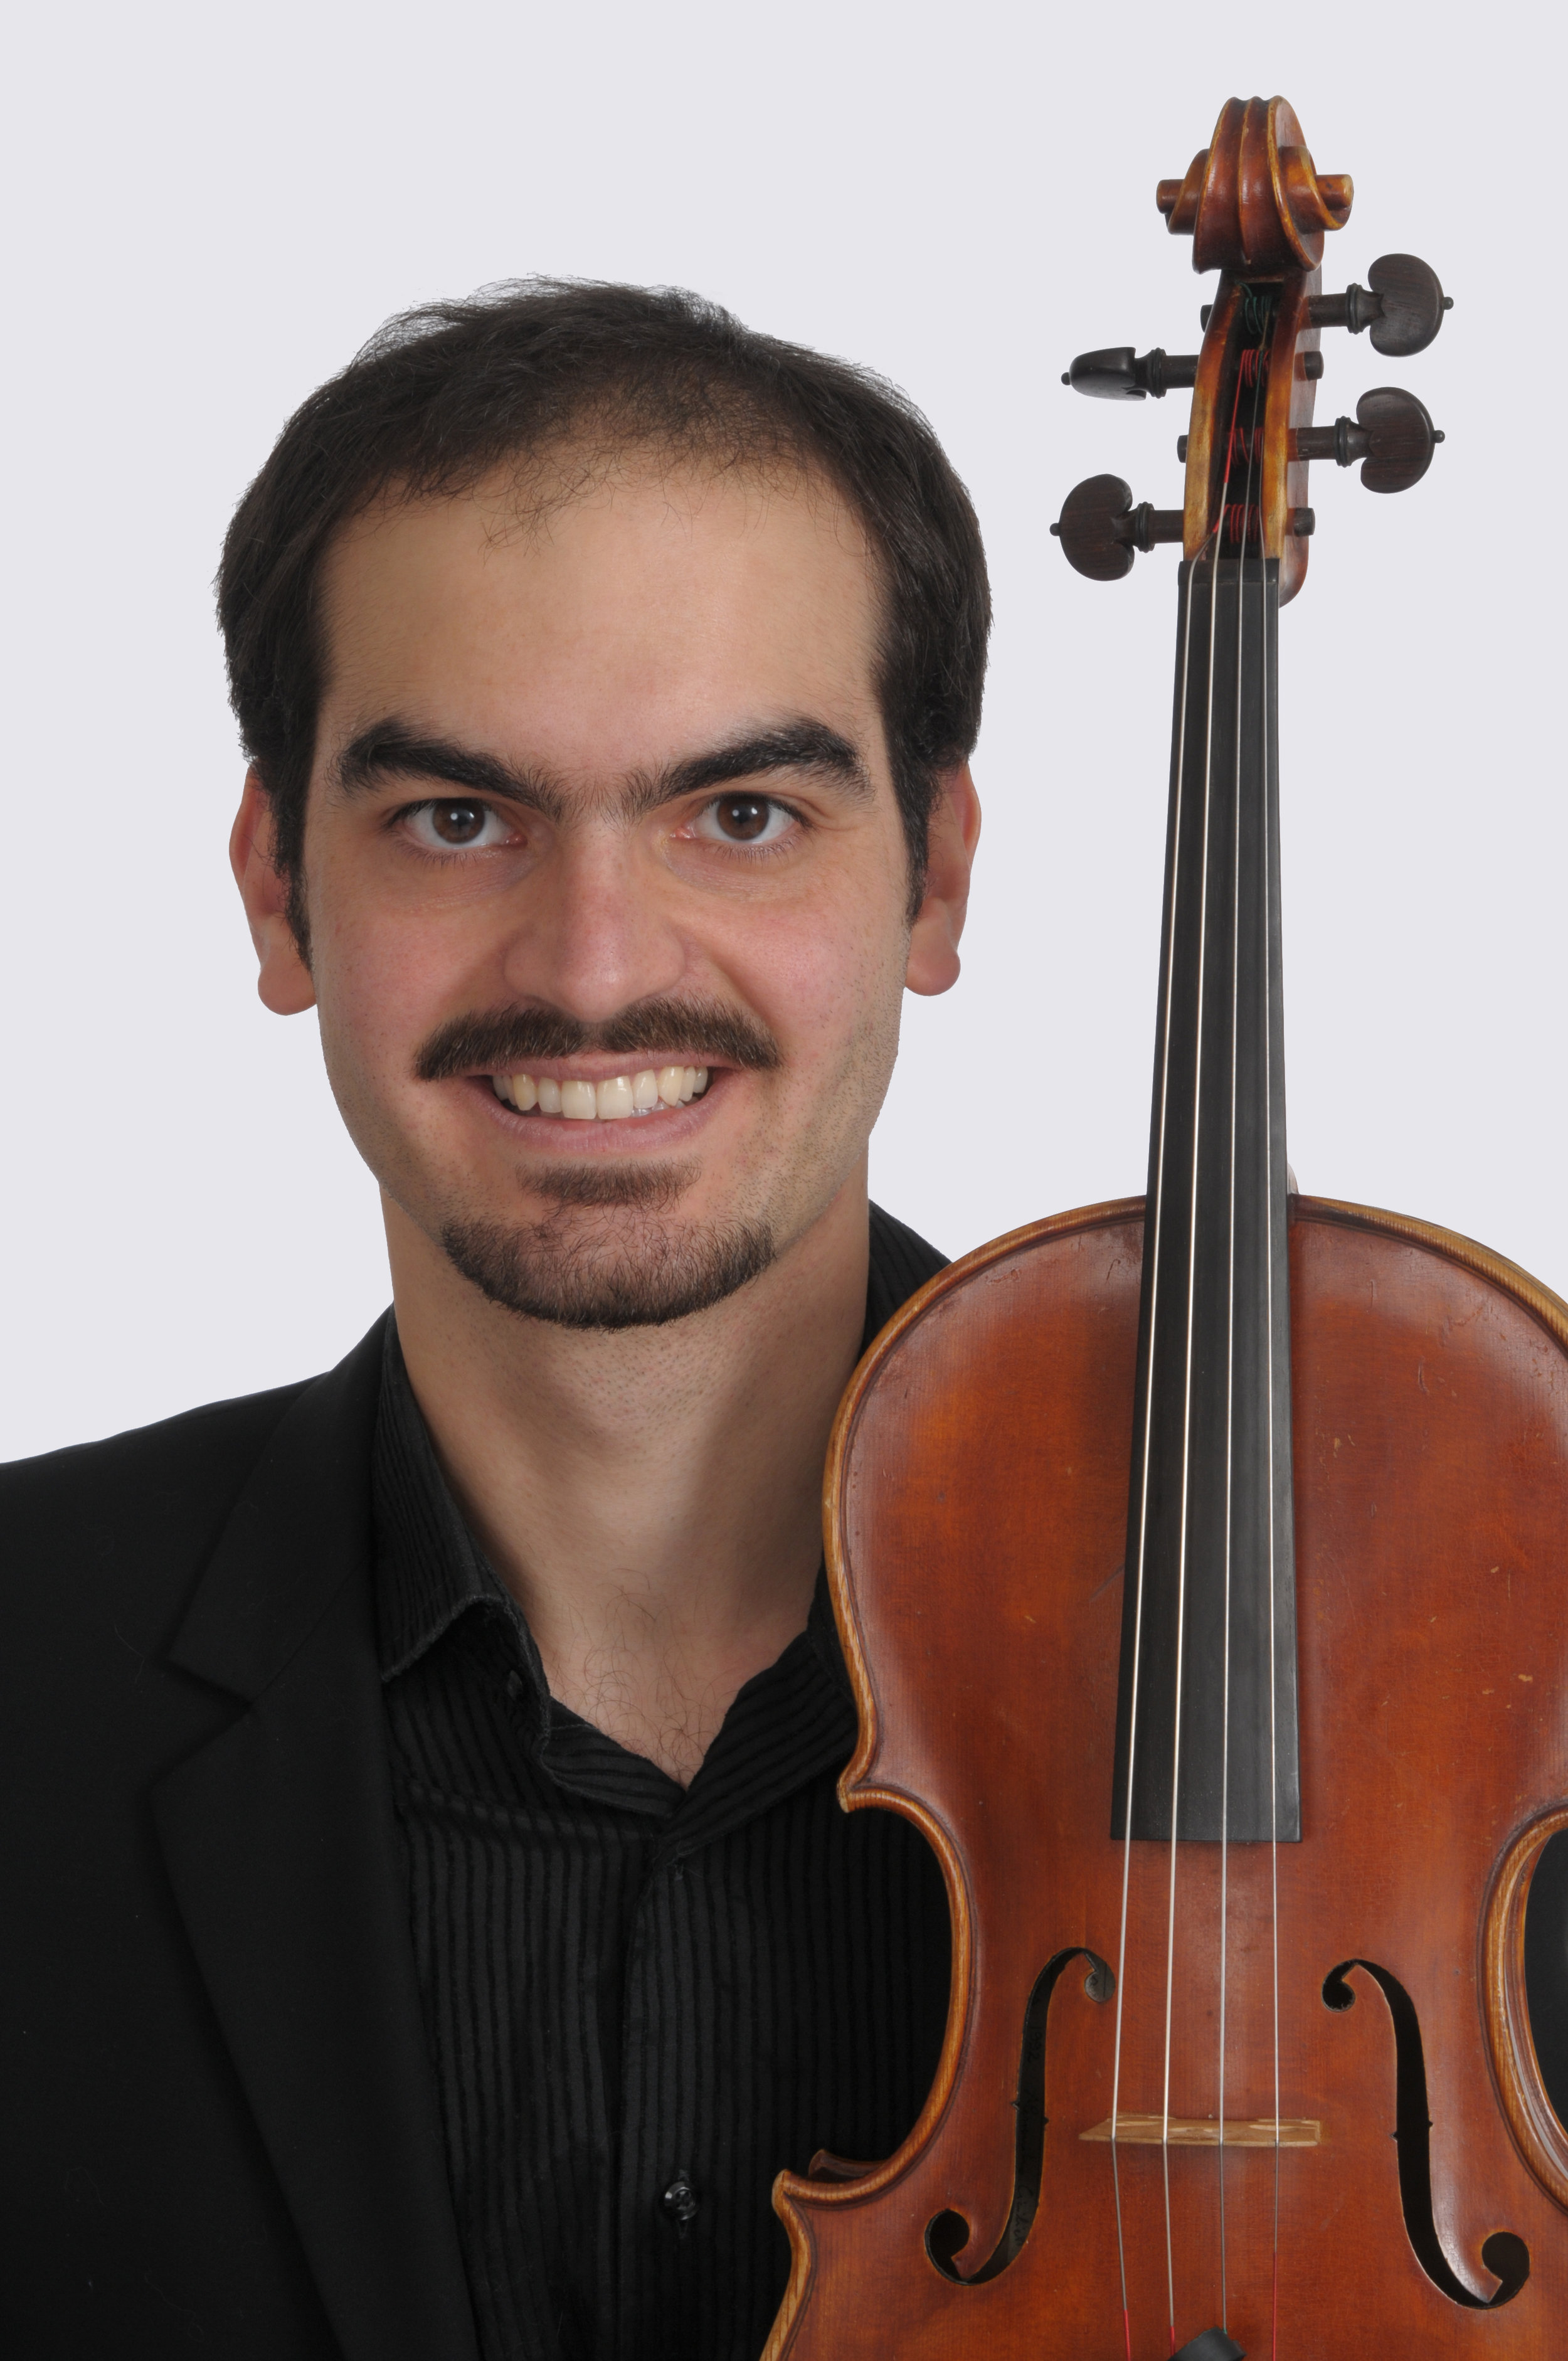 Arnaud Ghillebaert,principal viola - Arnaud Ghillebaert, originally from Paris, is the viola performance instructor at the University of Oregon. Before receiving his Doctorate of Musical Arts from Stony Brook University, he obtained his Masters' at the Royal College of London and played with many British orchestras including the London Symphony and the Academy of St Martin in the Fields. He is a founding member of the Elsewhere Ensemble, a chamber music/theater group that has performed extensively abroad and in the US.